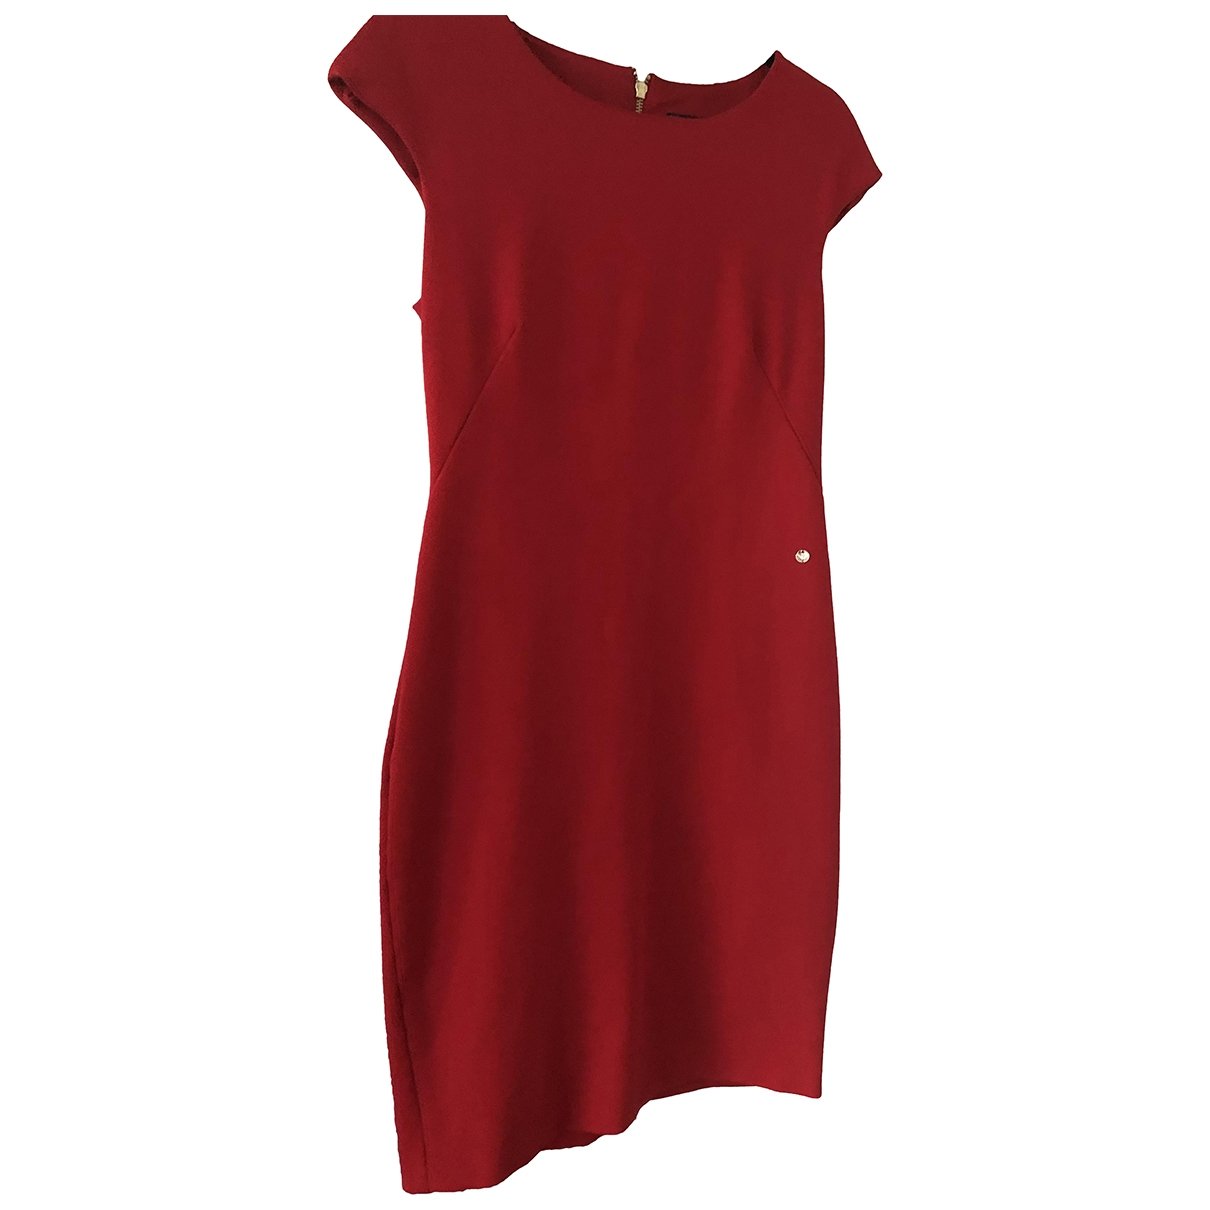 Armani Jeans \N Red Cotton - elasthane dress for Women 42 FR